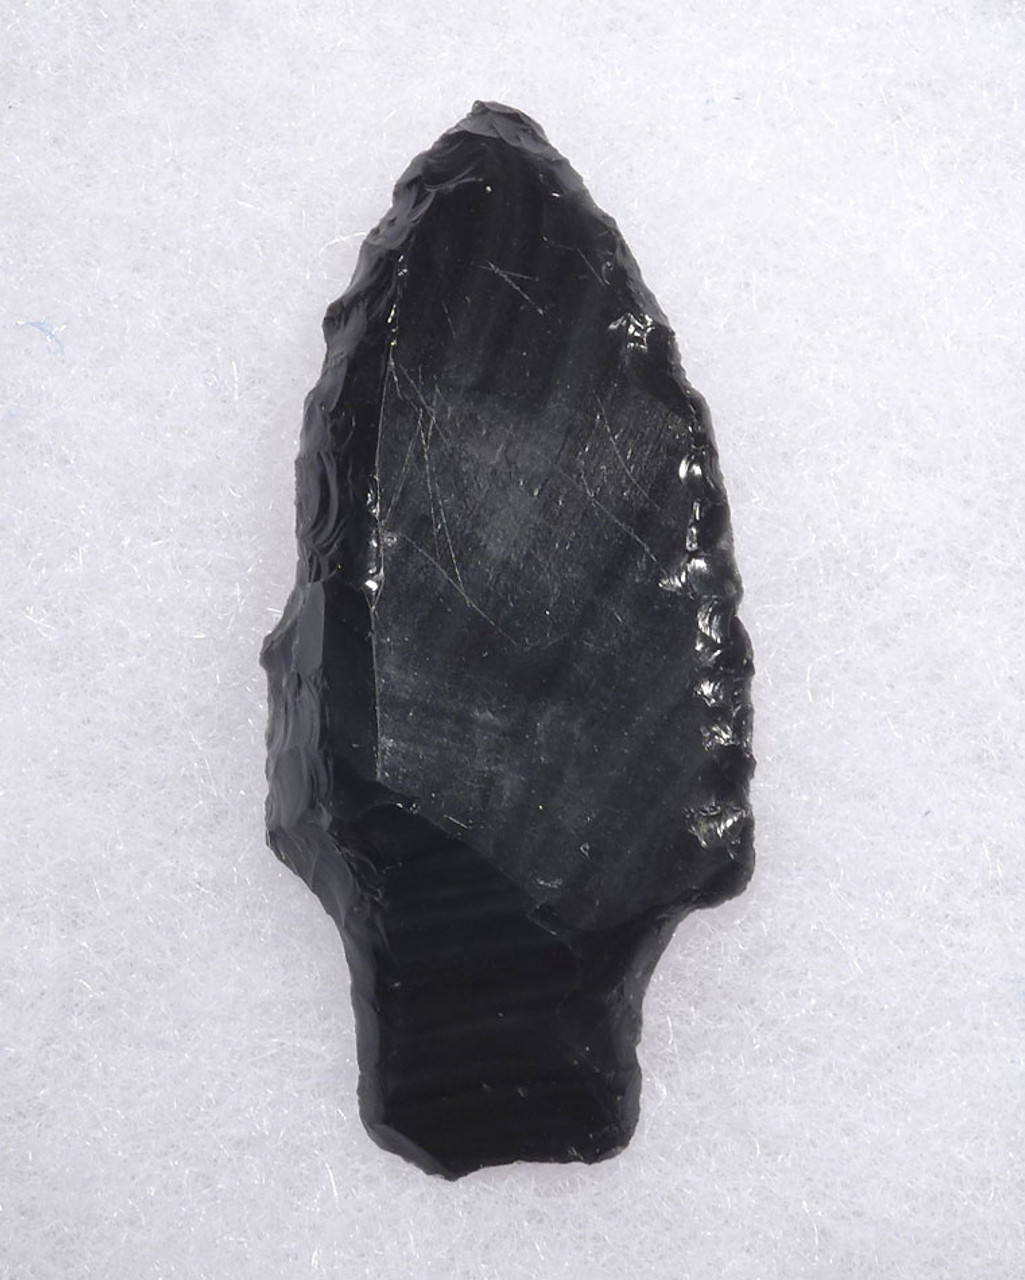 RARE BANDED OBSIDIAN PRE-COLUMBIAN ATLATL POINT SPEARHEAD  * PC306